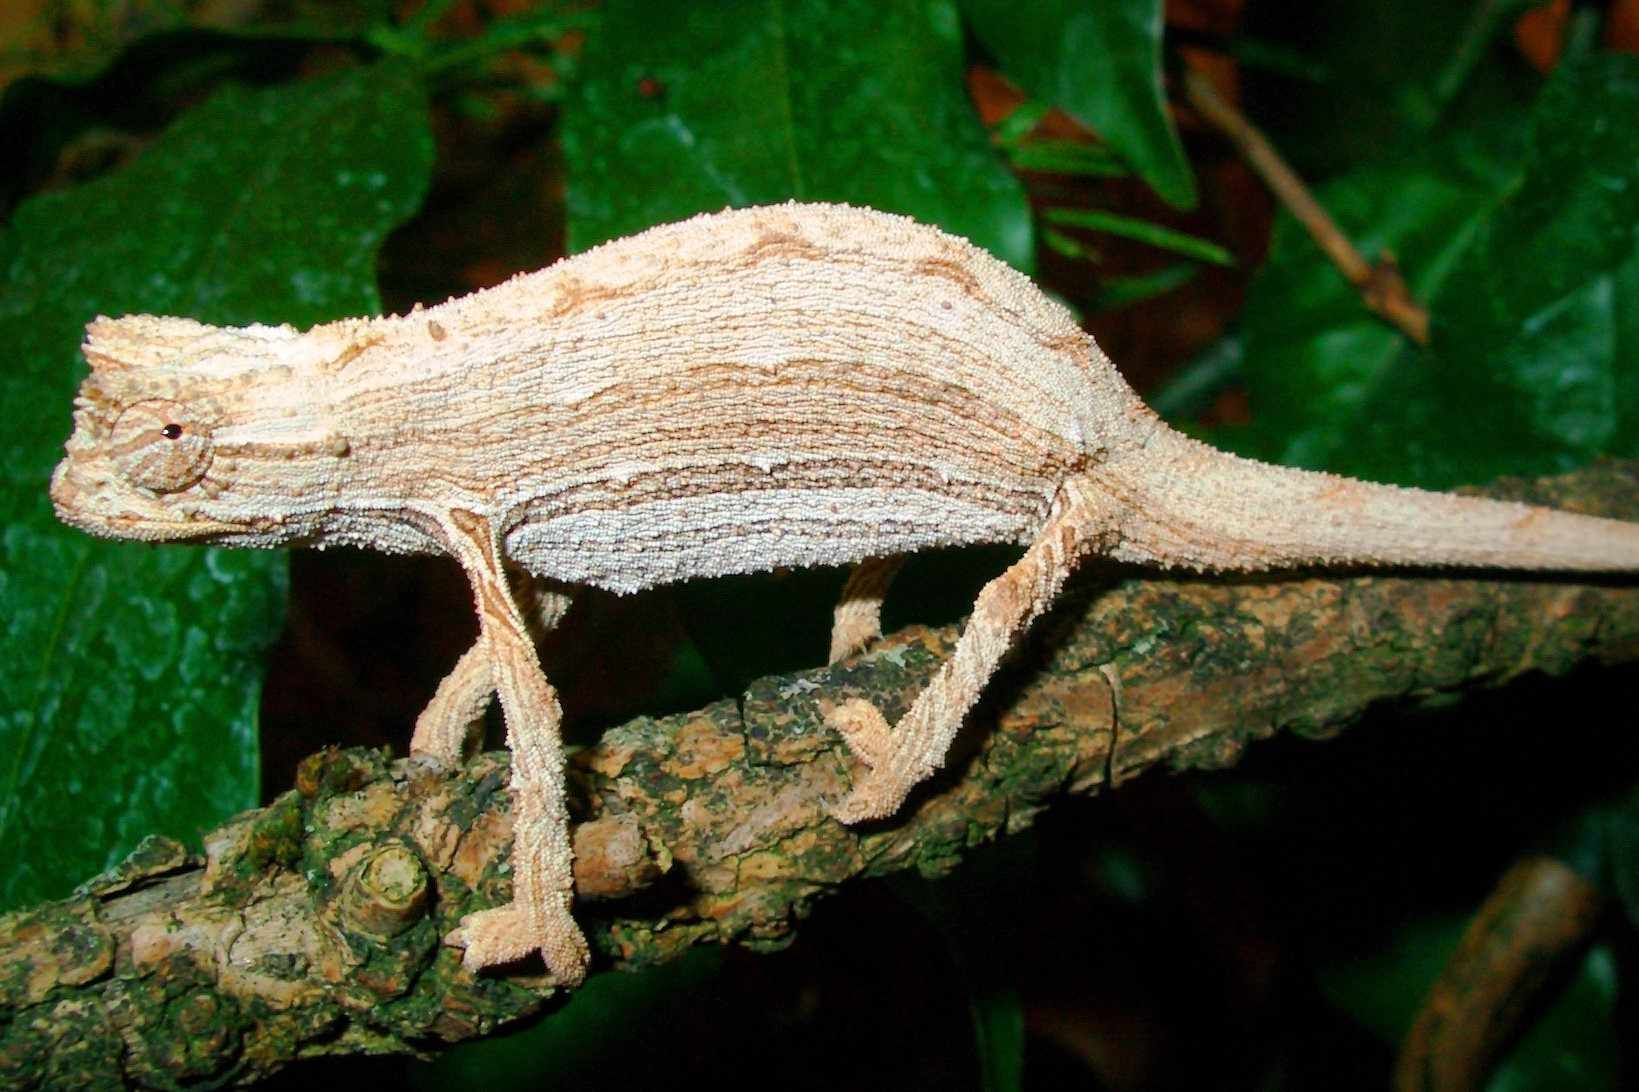 white and tan kenyan pygmy chameleon stands on tree branch